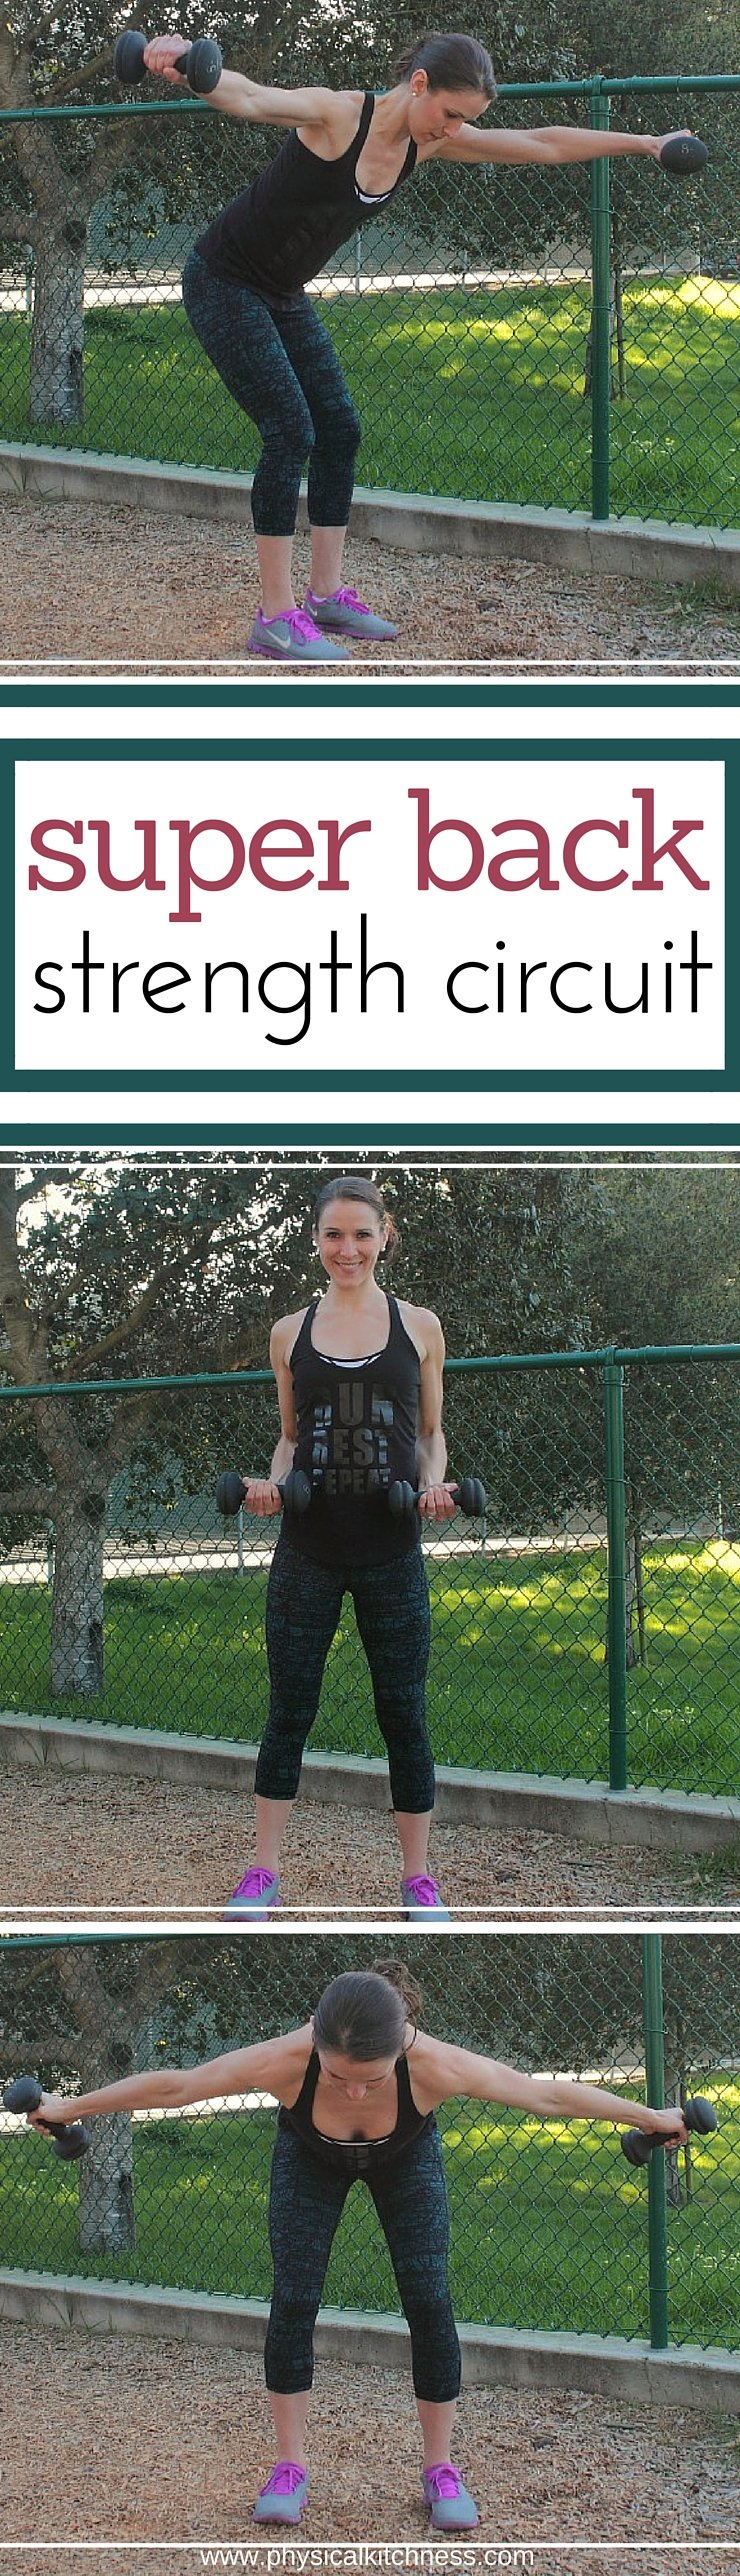 STRENGTHEN your back while sculpting your shoulders, upper back, and lower back with this super back strength circuit. An easy-to-follow, workout you can do anywhere! 4 exercises, endless possibilities!